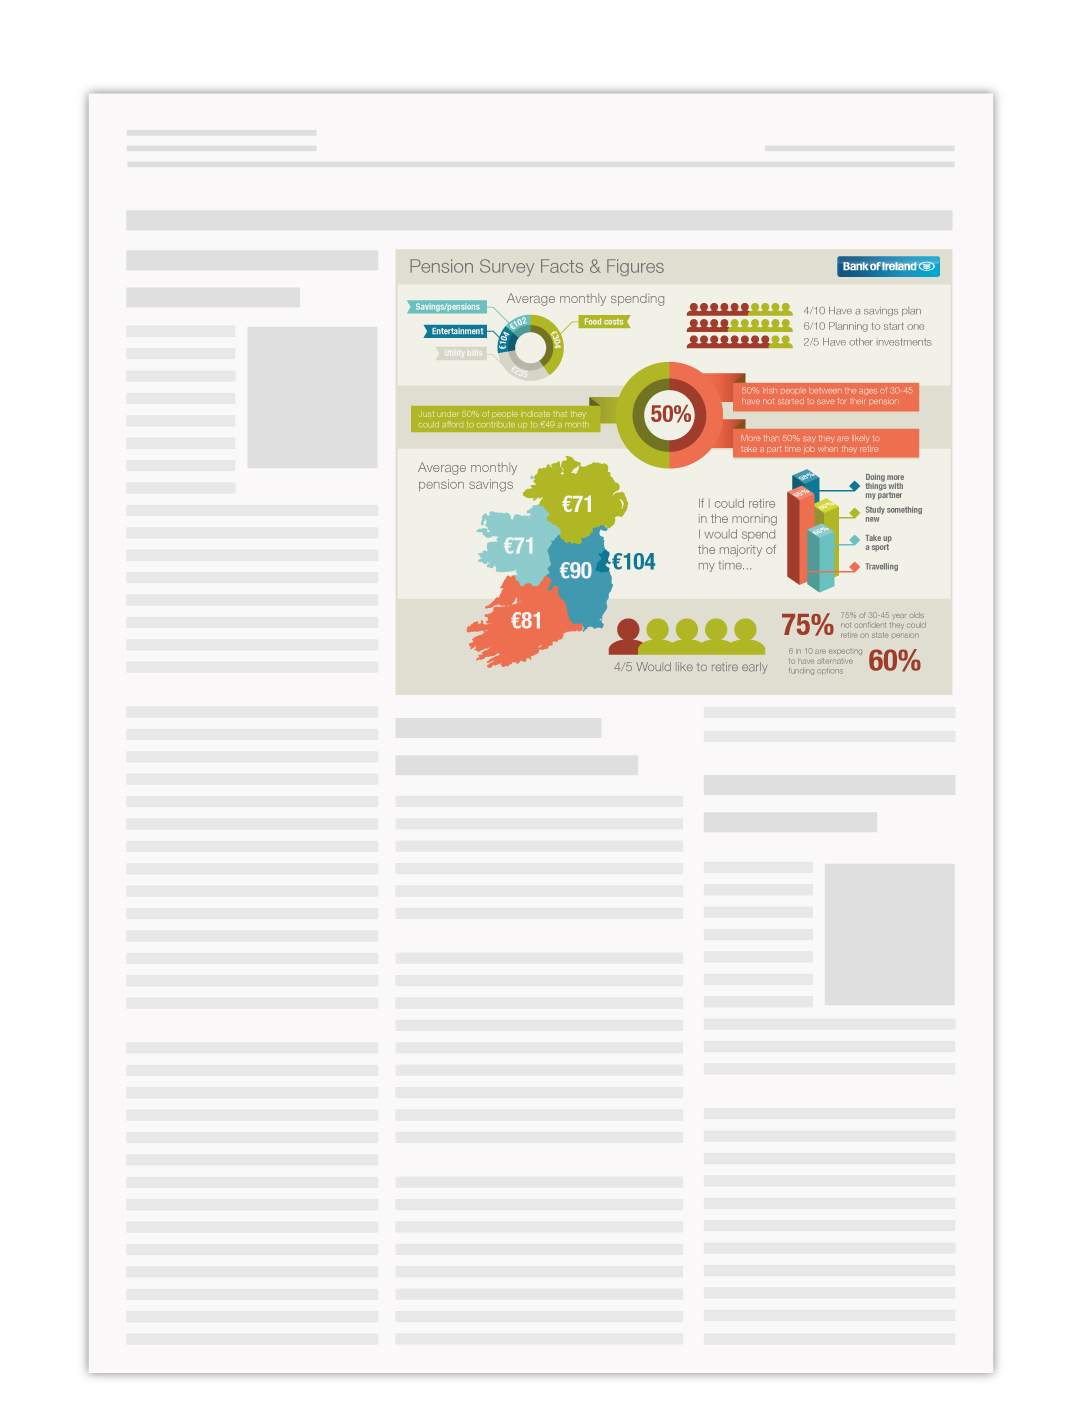 q4081a_Infographic_applied_to_newspaper_01b